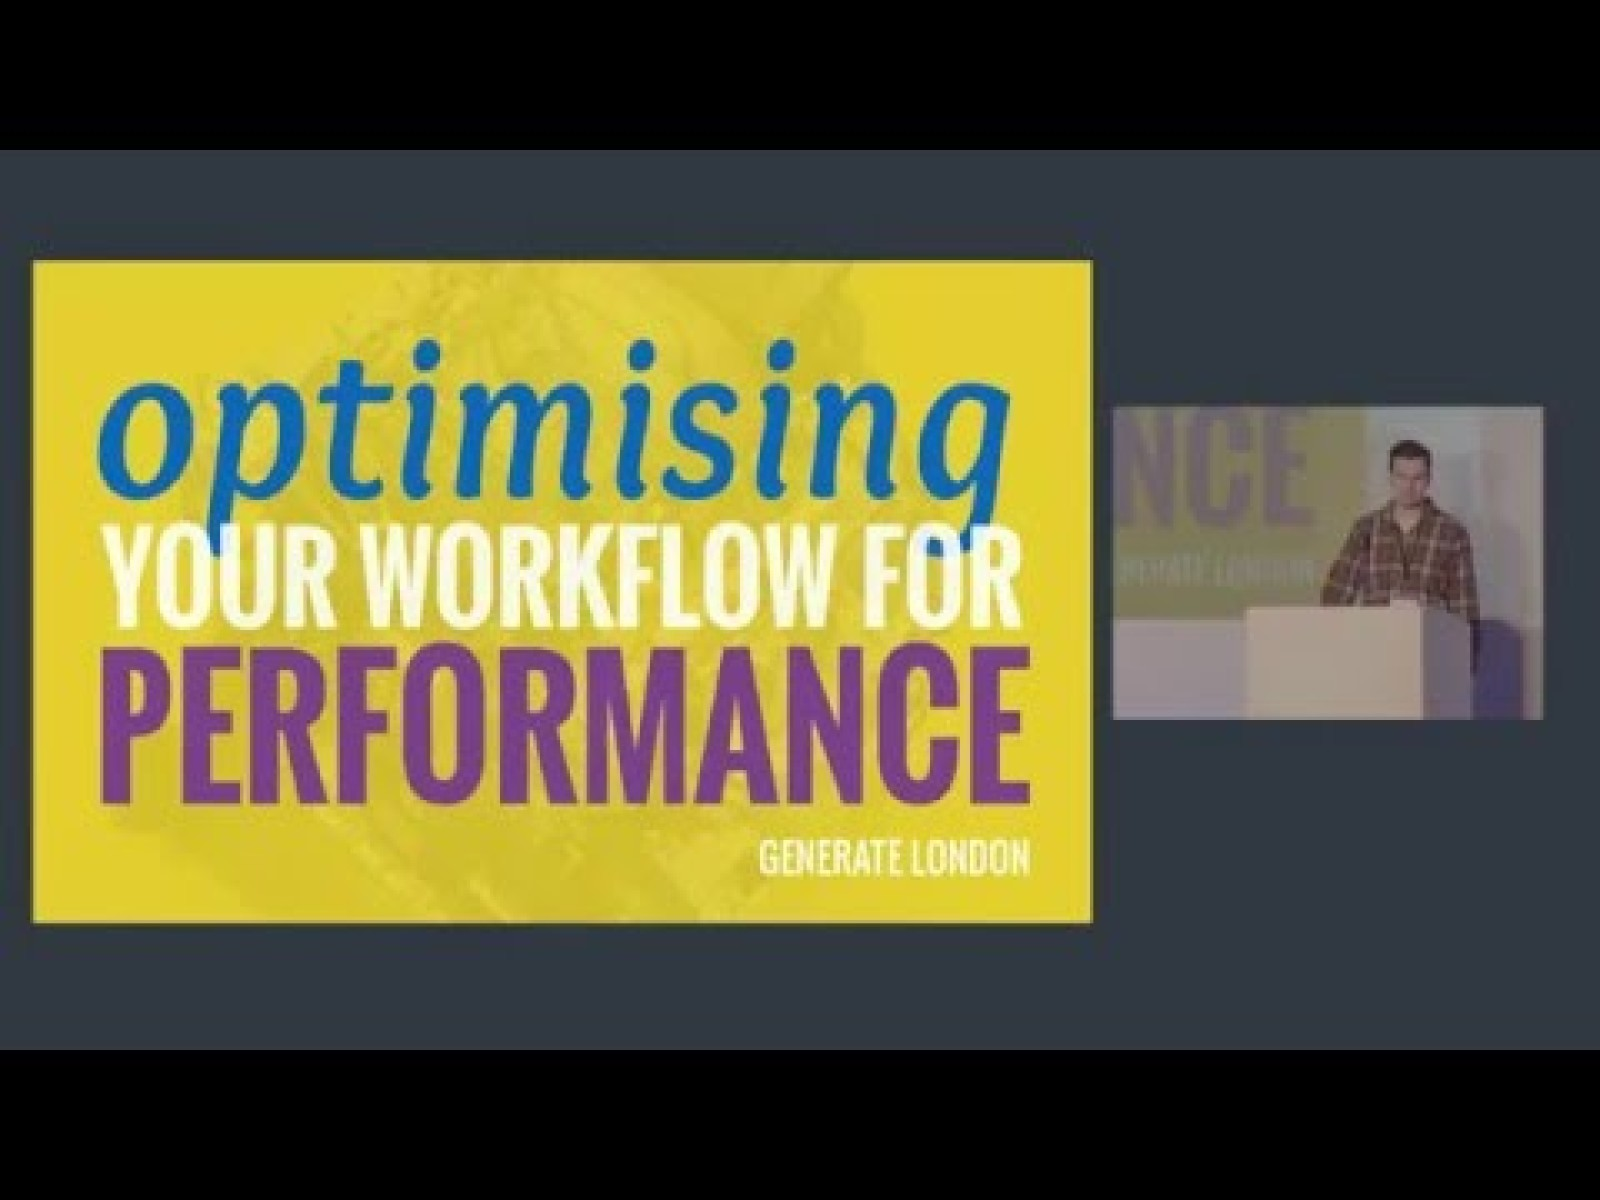 Optimising your workflow for performance